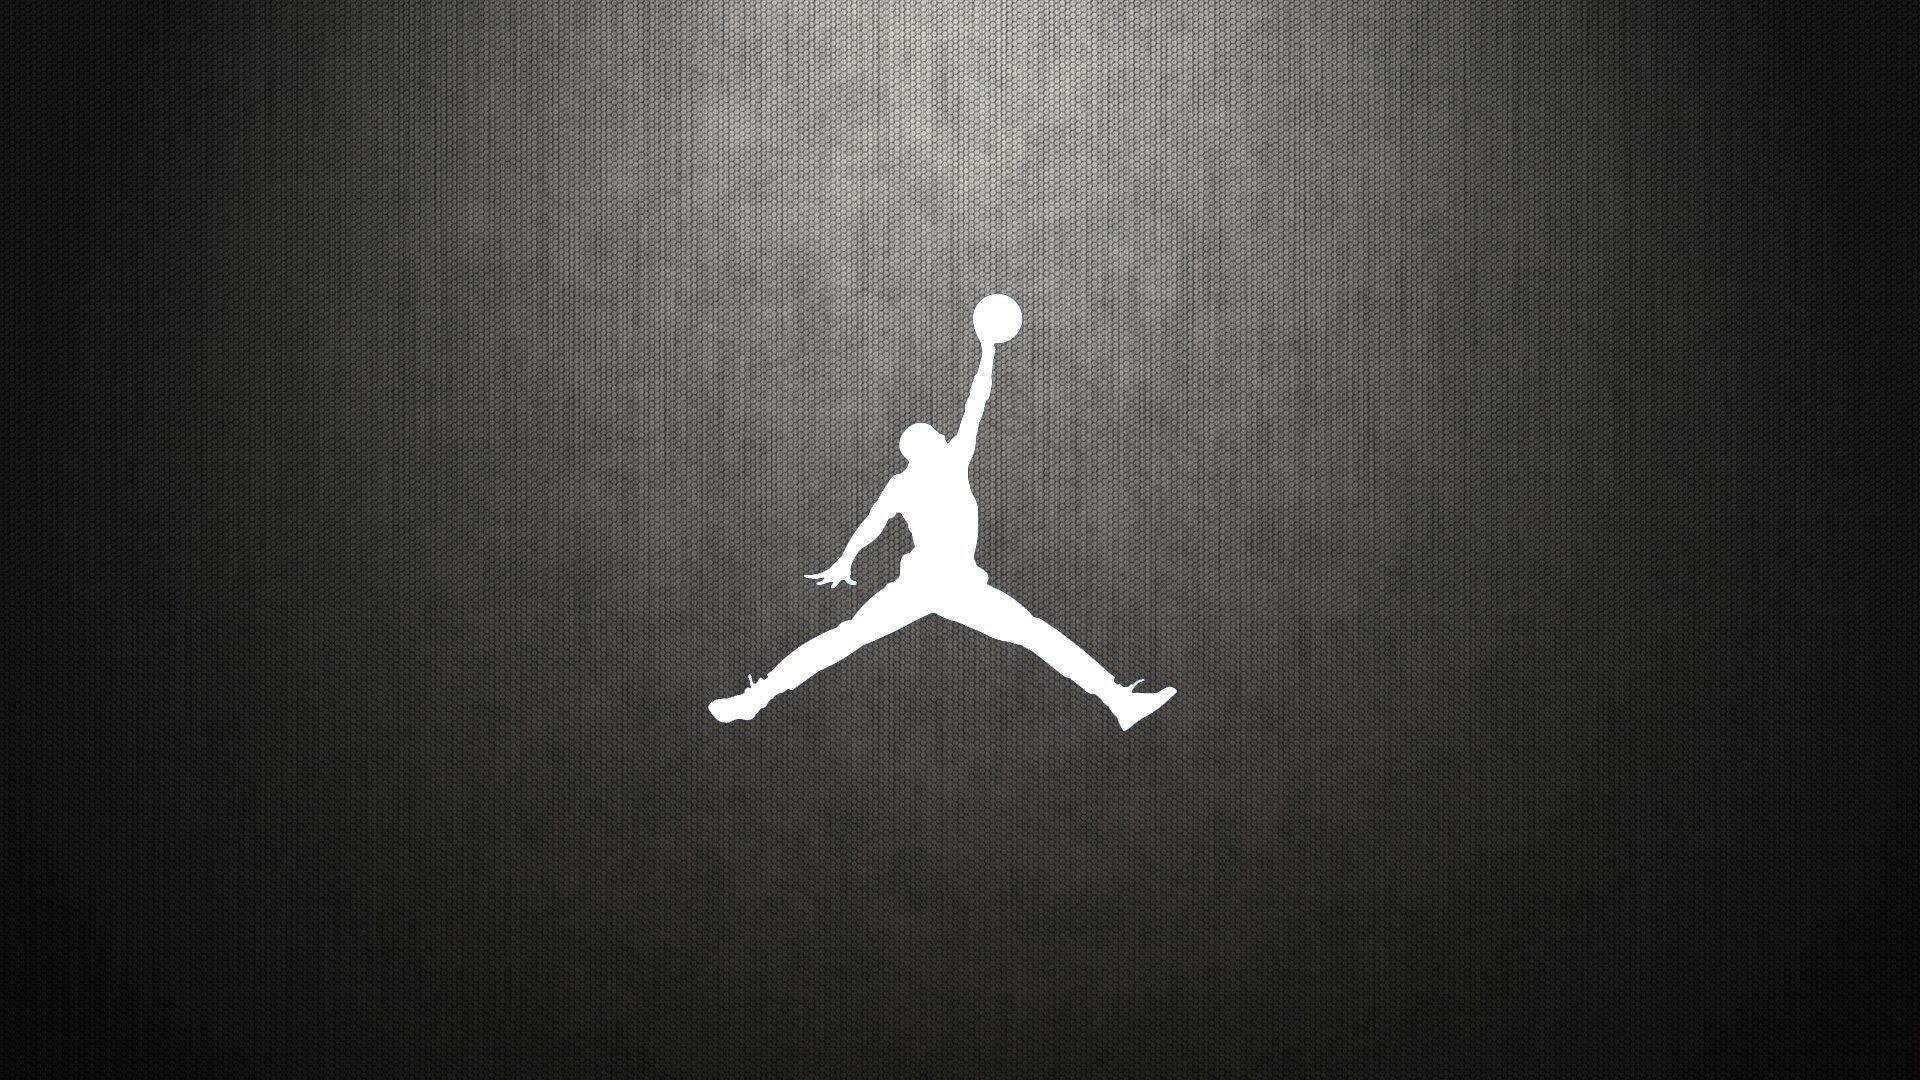 1920x1080 Basketball HD Wallpapers Backgrounds Wallpaper 1920×1080 Basketball HD Wallpapers (49 Wallpapers)